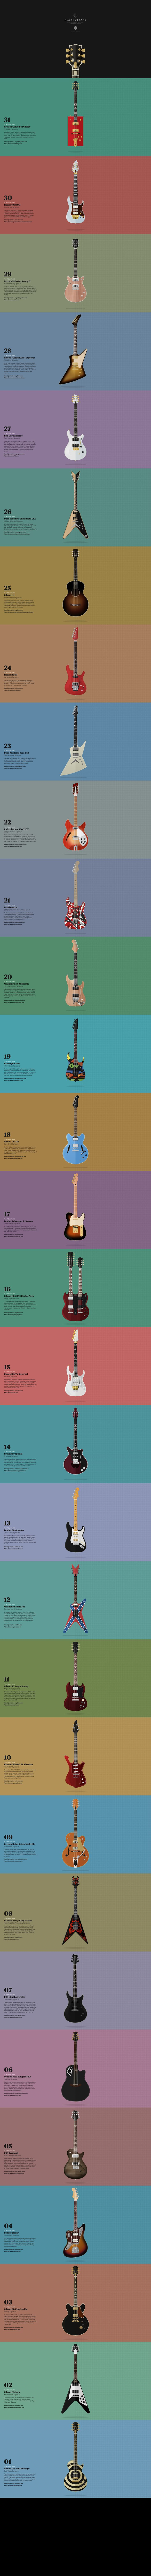 47 Best Guitars Images On Pinterest Bass And Fender Jaguar Guitar Wiring Diagram Hecho Types Of